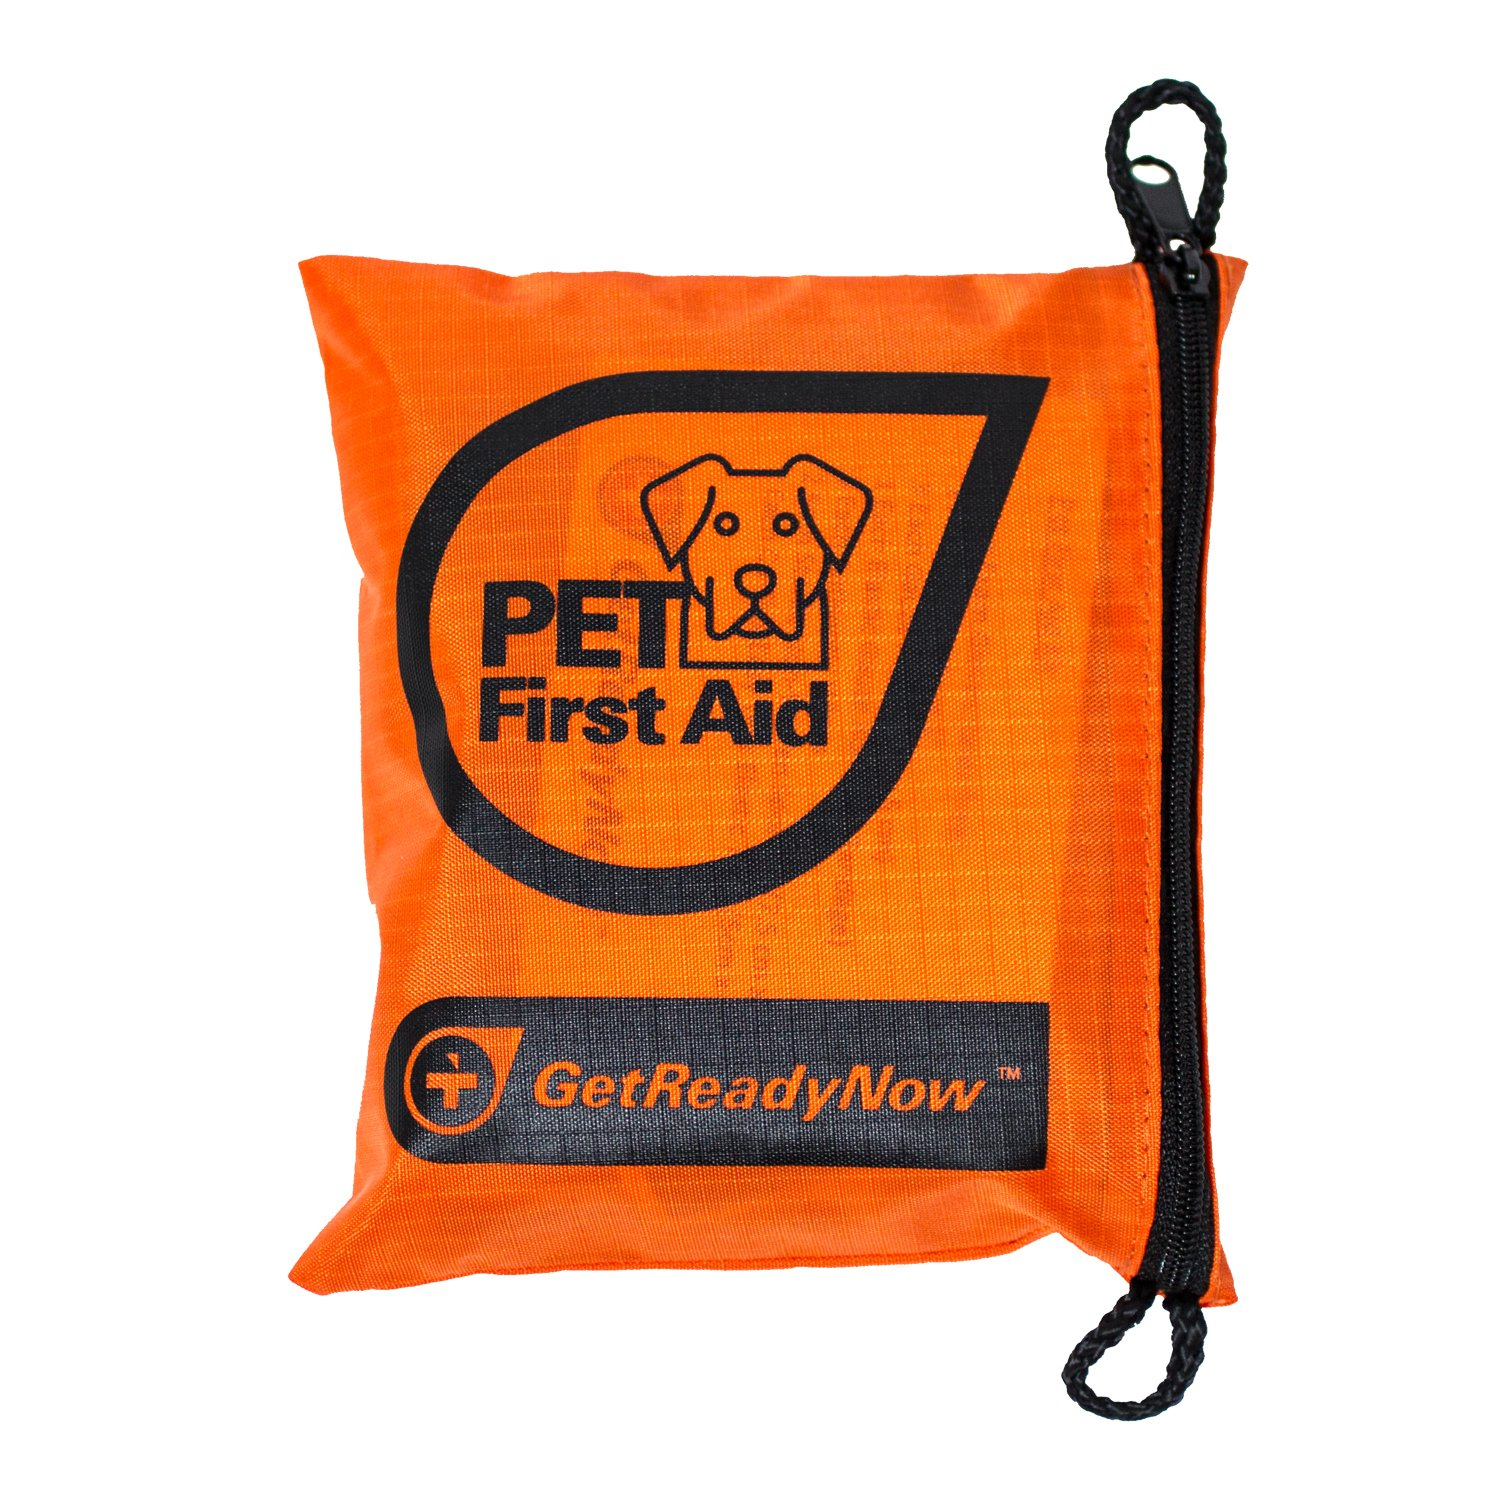 GETREADYNOW Pups & Peeps Essential Pet First Aid Kit - Emergency Survival Kit + Deluxe Supplies to Rescue Pets and Keep Your Four-Legged Friend Safe on The Road + Dog Camping Gear, Emergency Supplies by GETREADYNOW